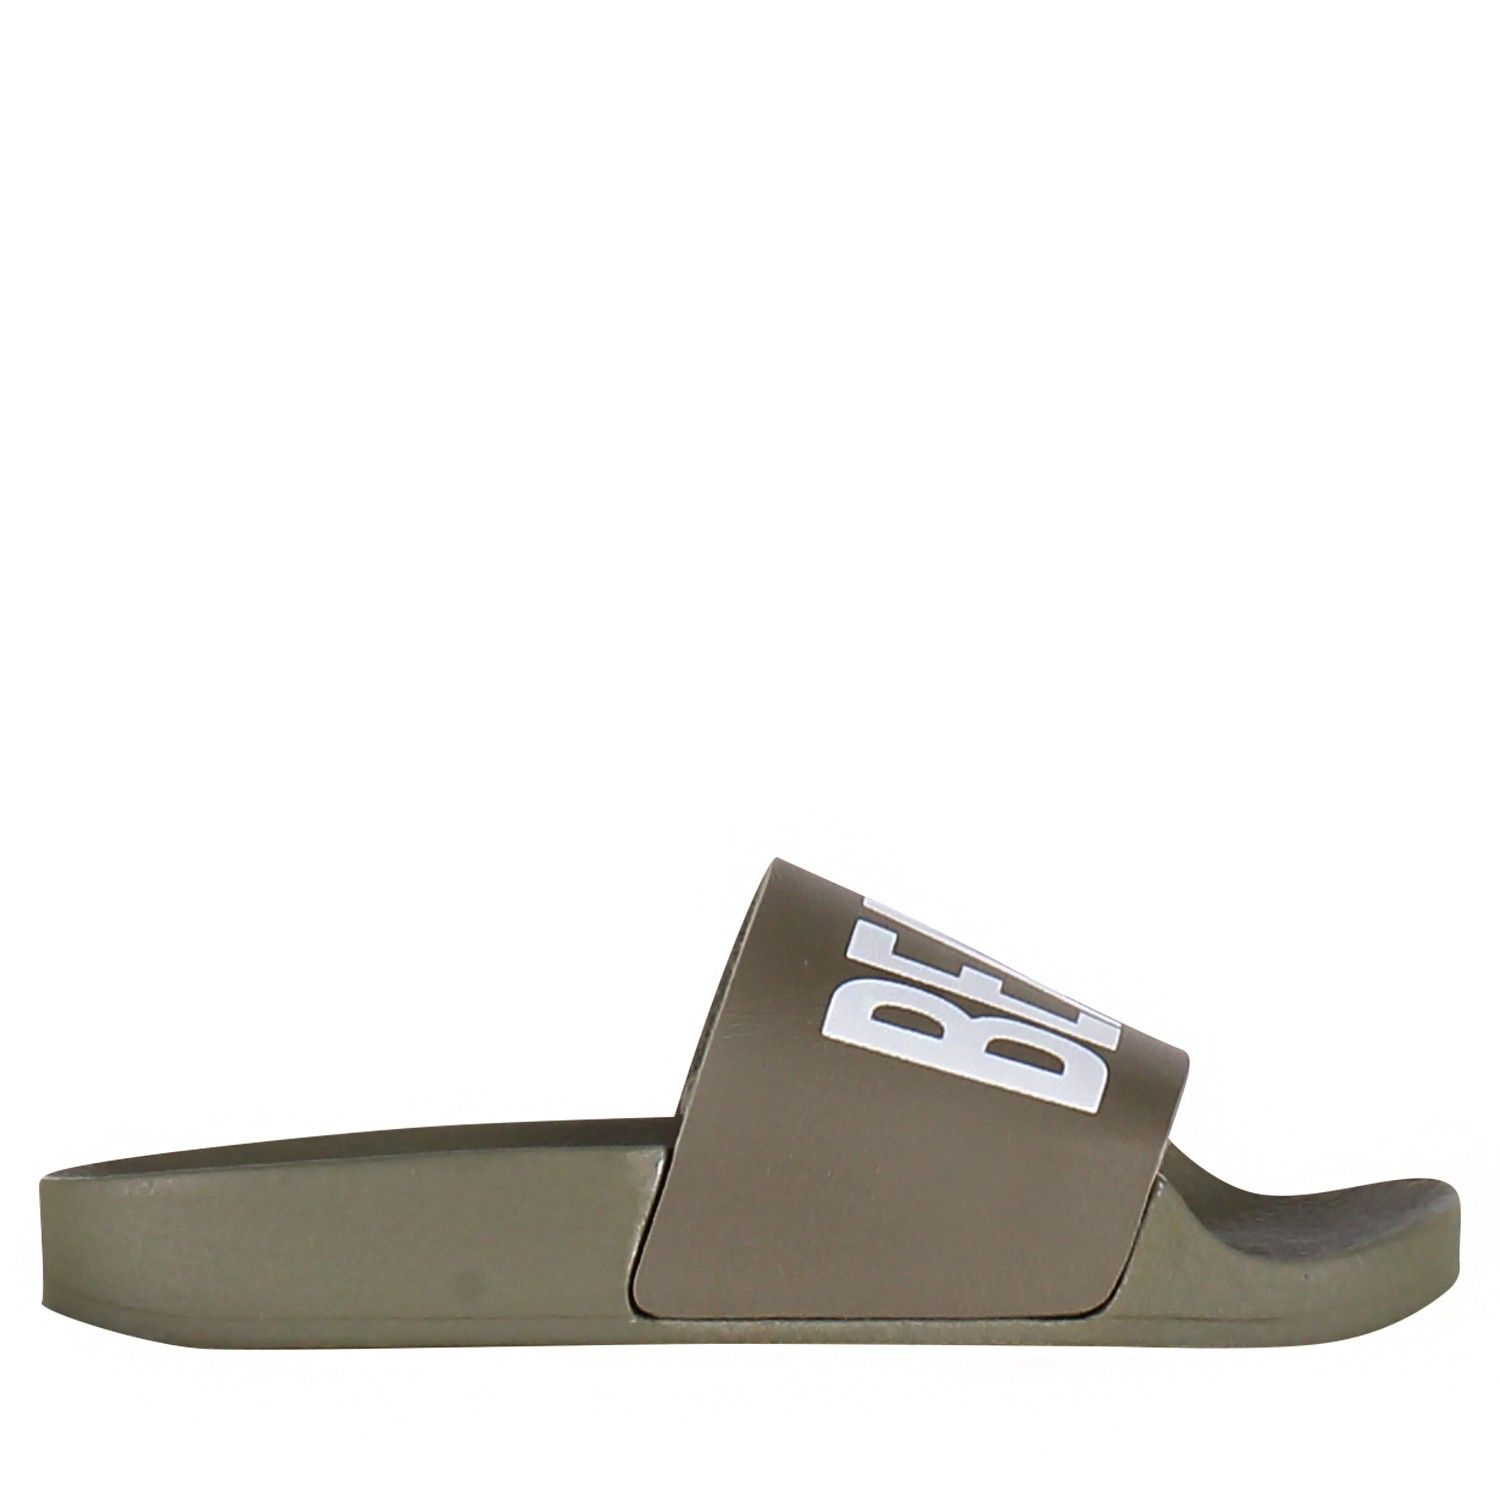 Picture of The White Brand K0151 kids flipflops army